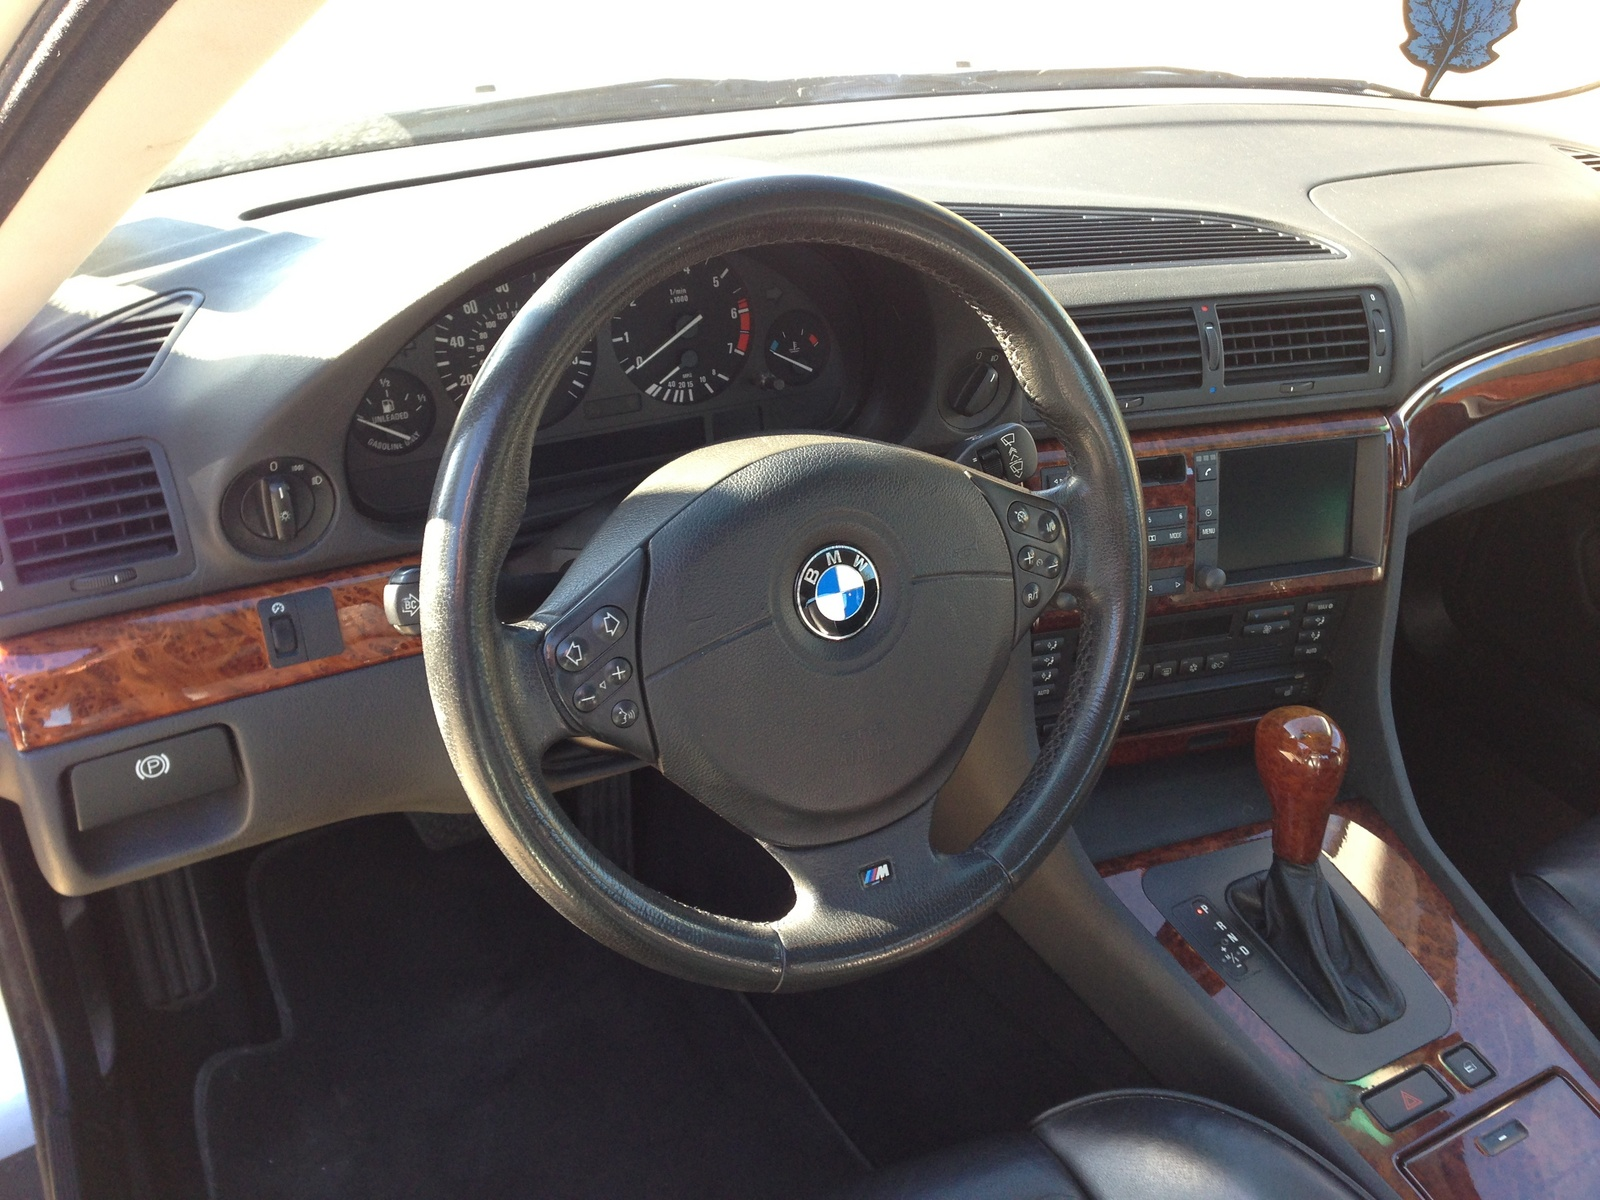 2001 Bmw 7 Series Interior Pictures Cargurus